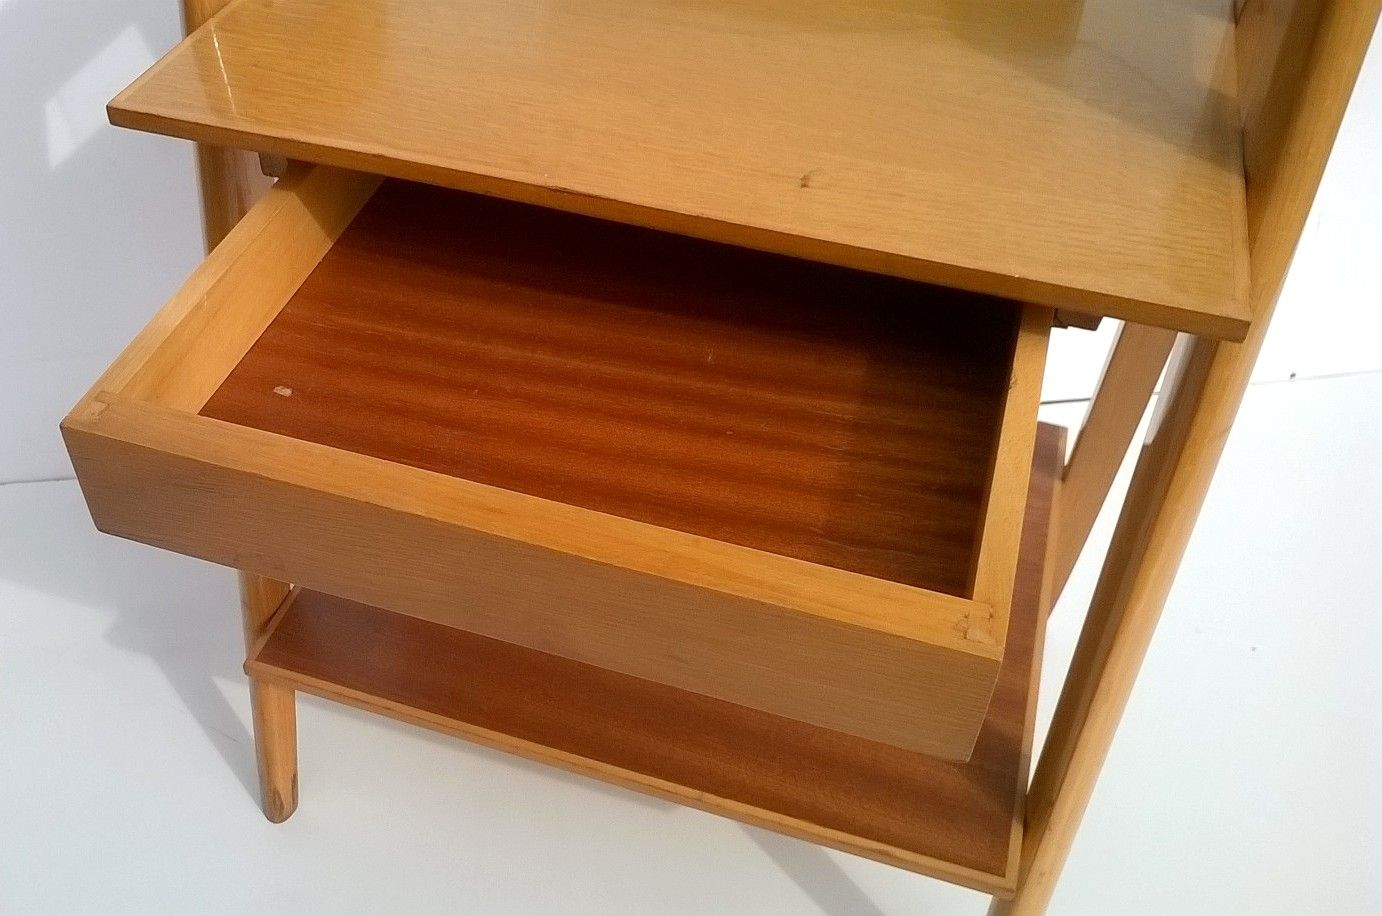 Glass Bedside Table : Italian Beech and Glass Bedside Table, 1950s for sale at Pamono